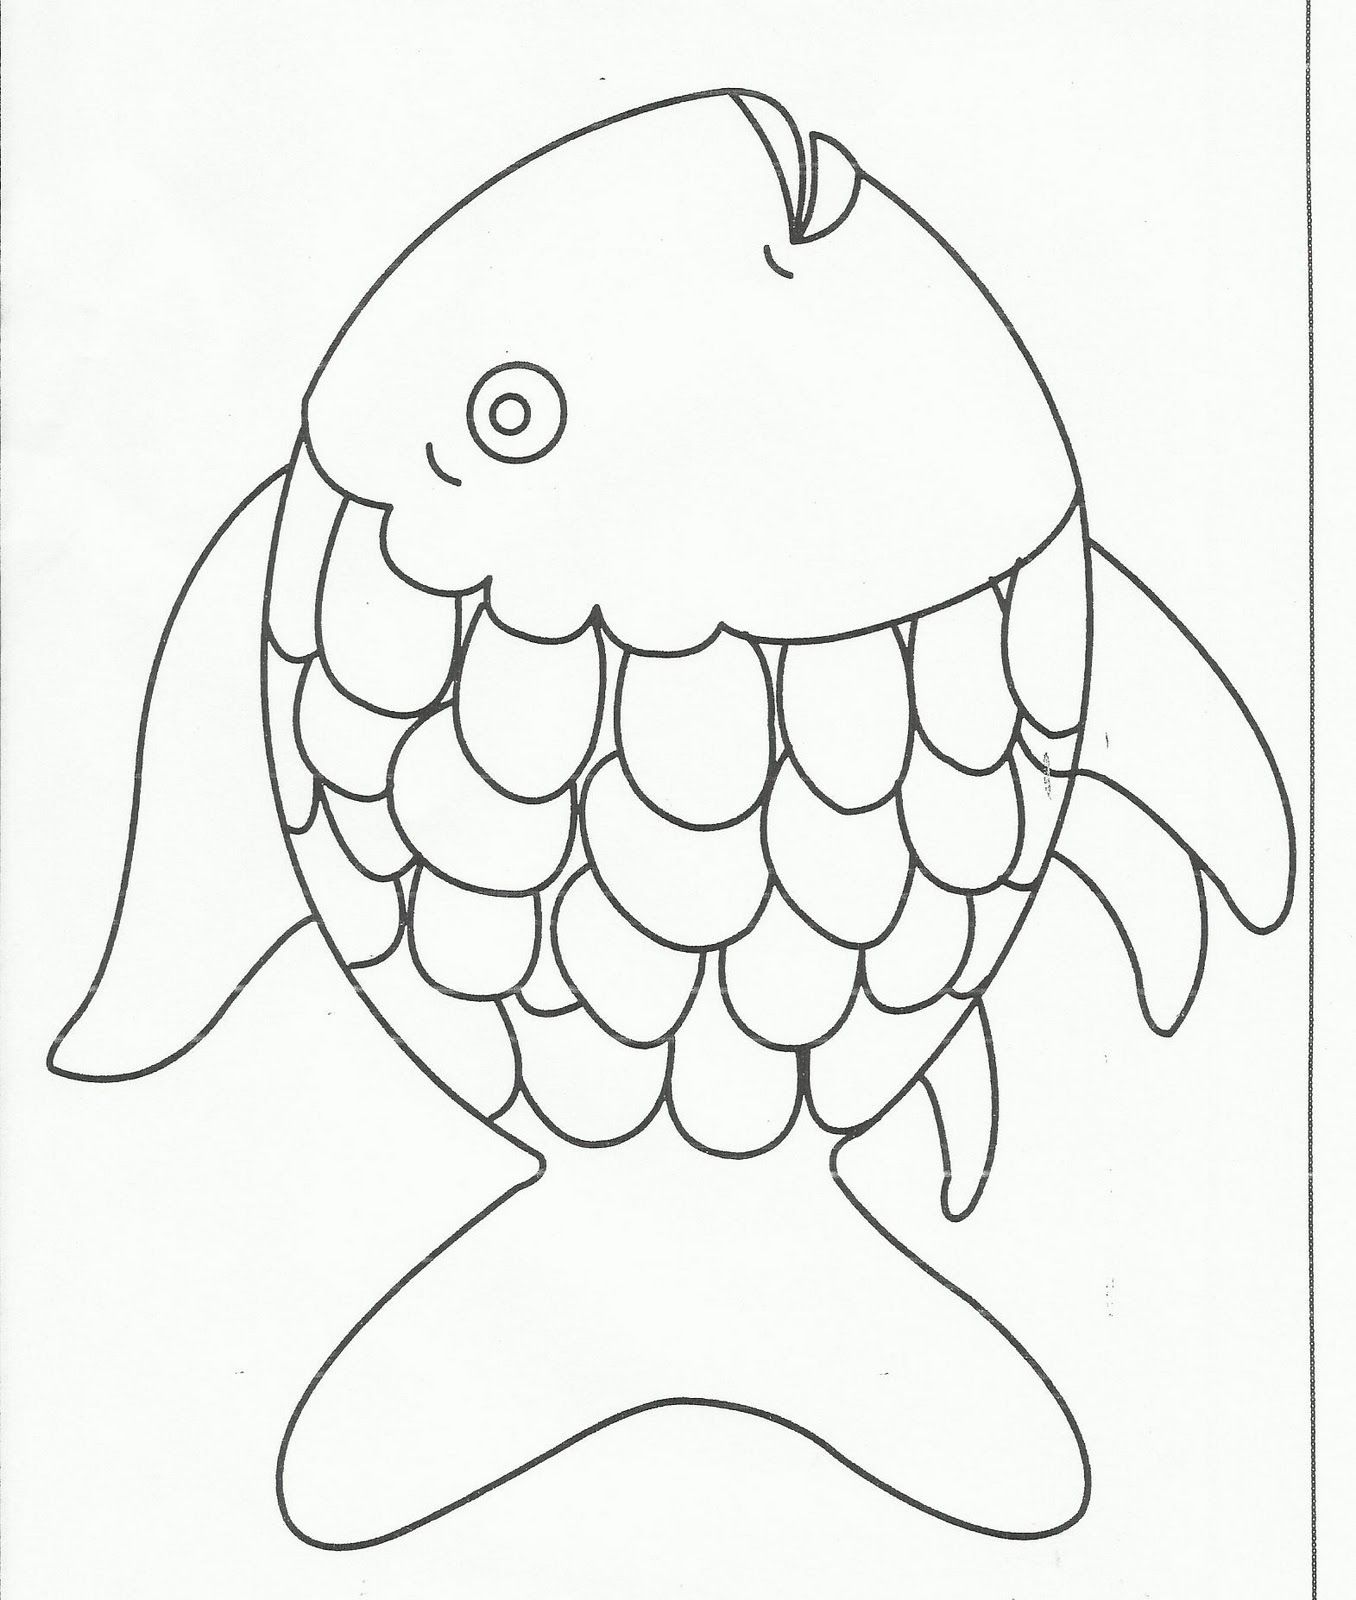 rainbow fish coloring page - Free Large Images | Camp4 | Pinterest ...